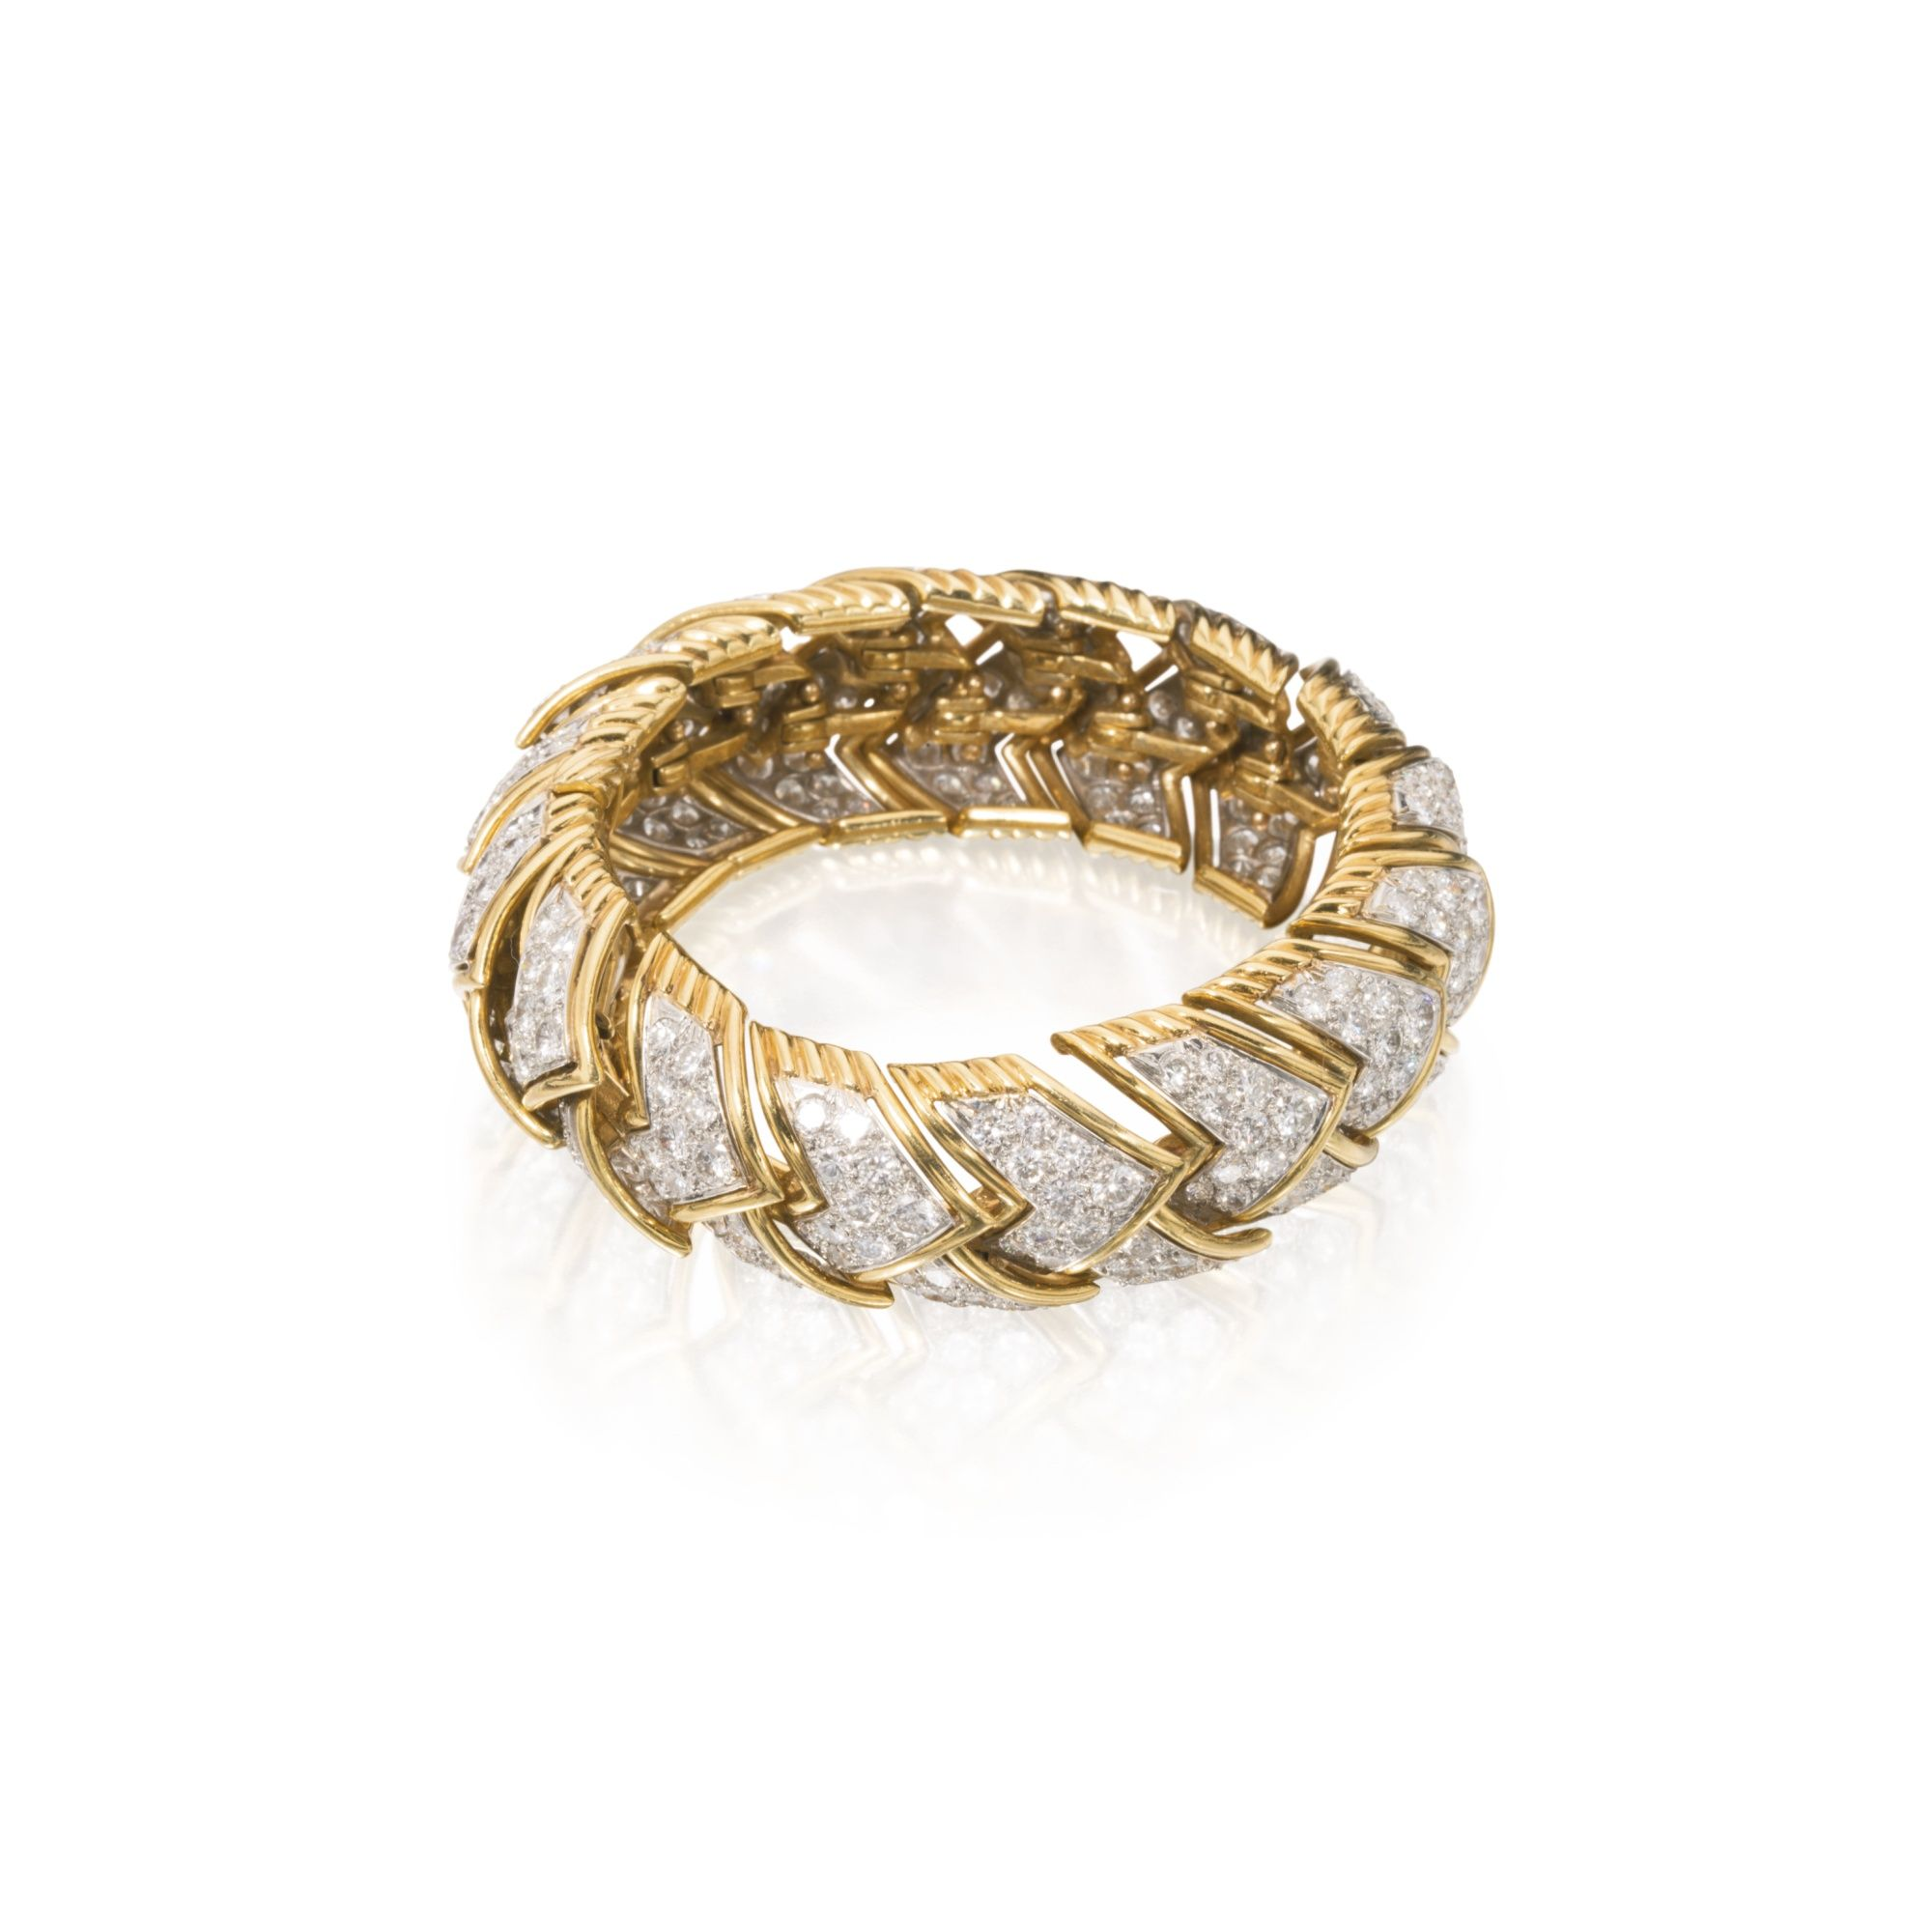 73e4f99be9f 18 Karat Gold, Platinum and Diamond Bracelet, David Webb Composed of  overlapping chevron-shaped links, set with round diamonds, gross weight  approximately ...